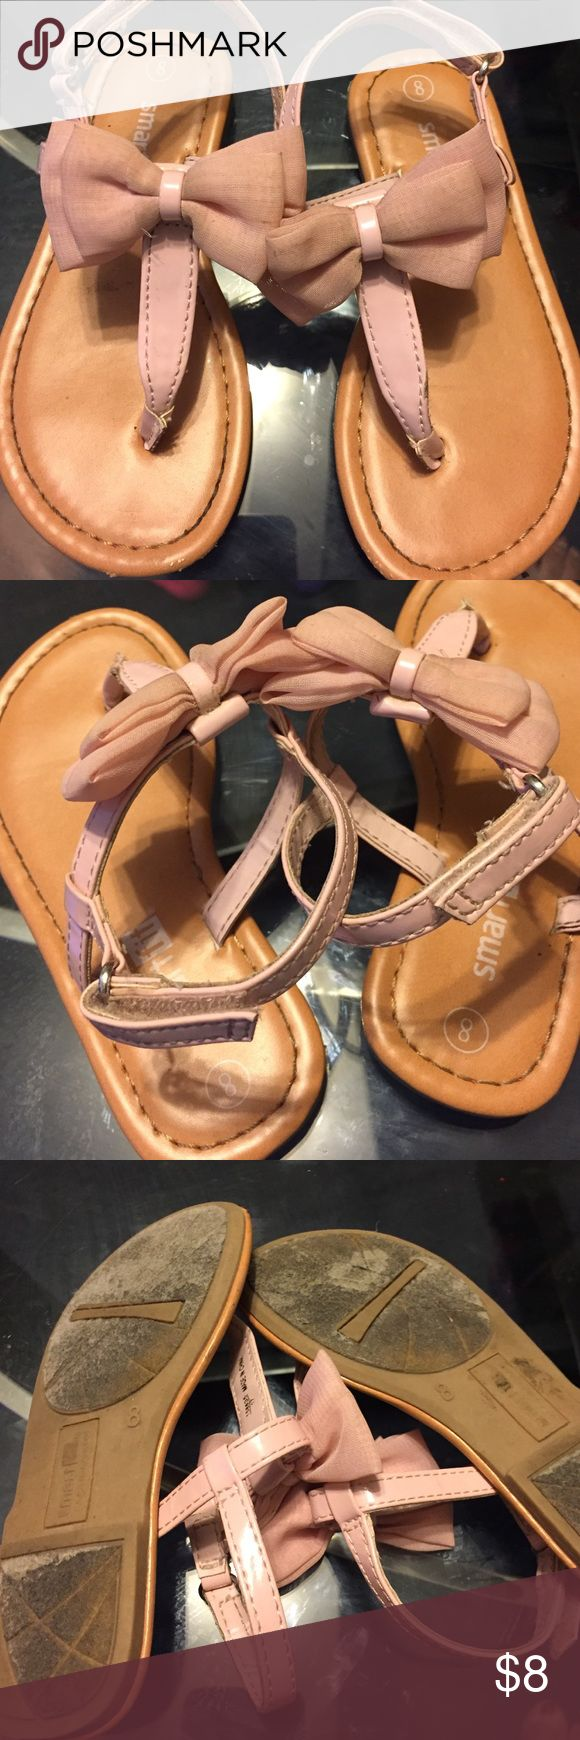 Sandals for toddlers cute pink with bow Size 8 toddlers sandals for sale the bow is a little dirty but water will wash the dirt away very good conditions smartfit Shoes Sandals & Flip Flops